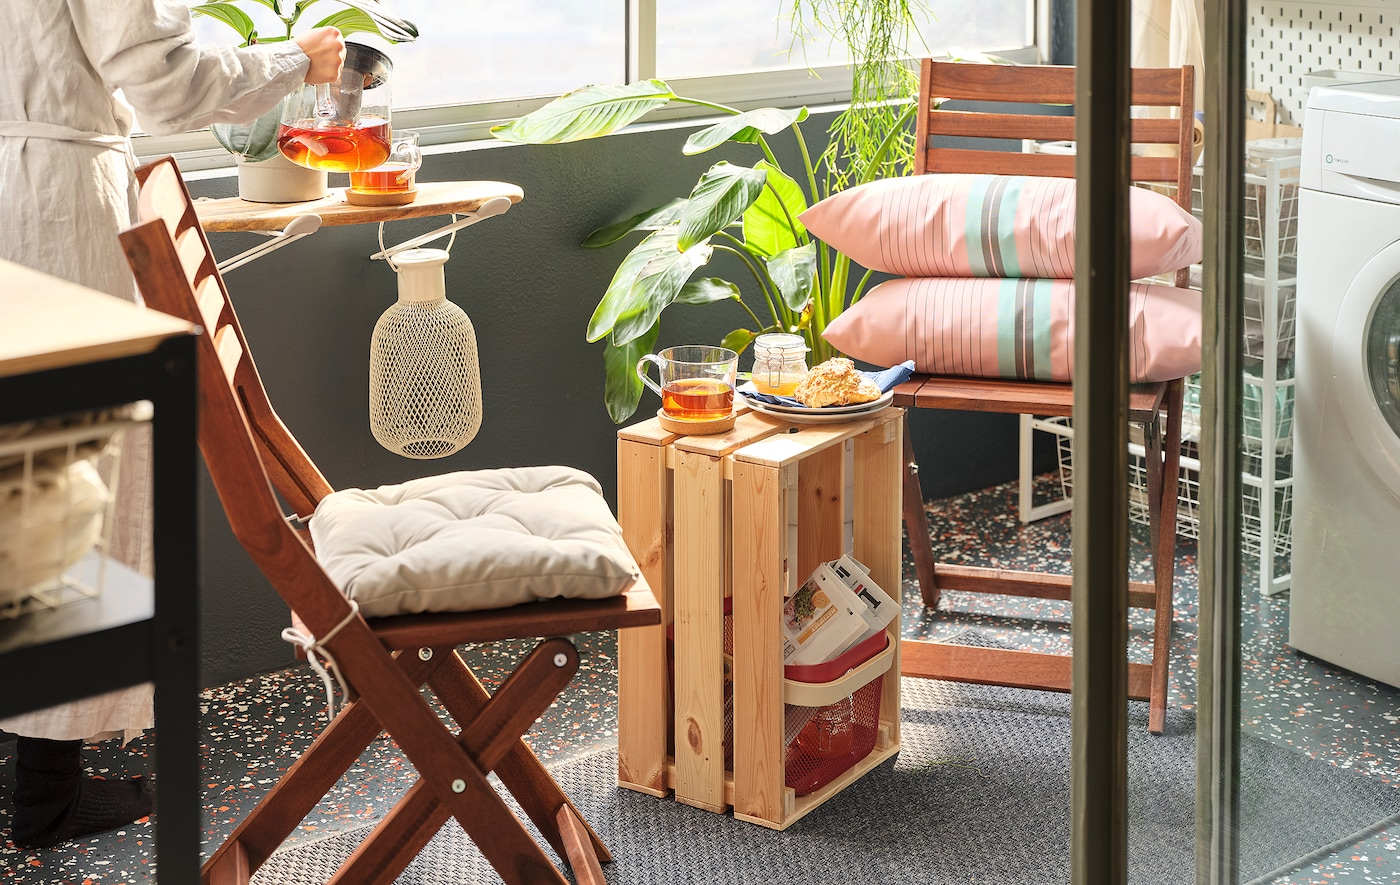 Sunlit balcony coffee nook formed by folding chairs and a KNAGGLIG crate standing on its side as a small table in between.